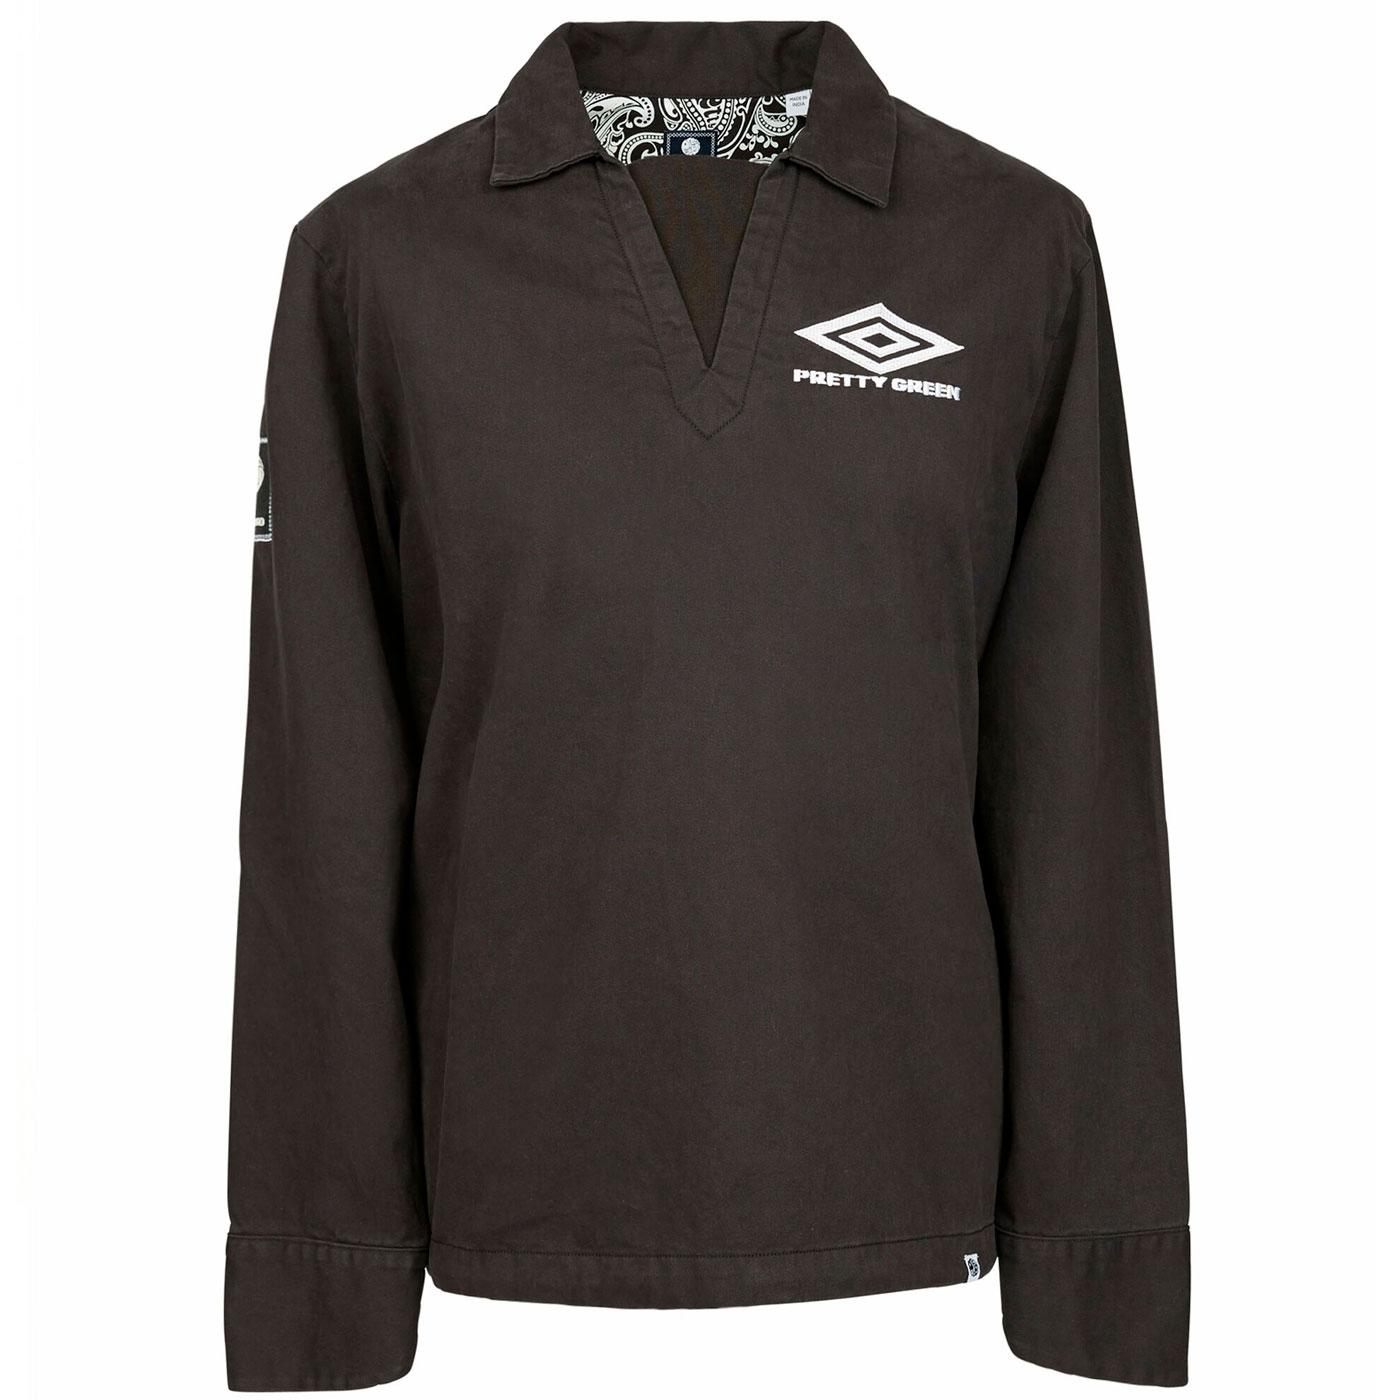 PRETTY GREEN X UMBRO Retro Training Top BLACK